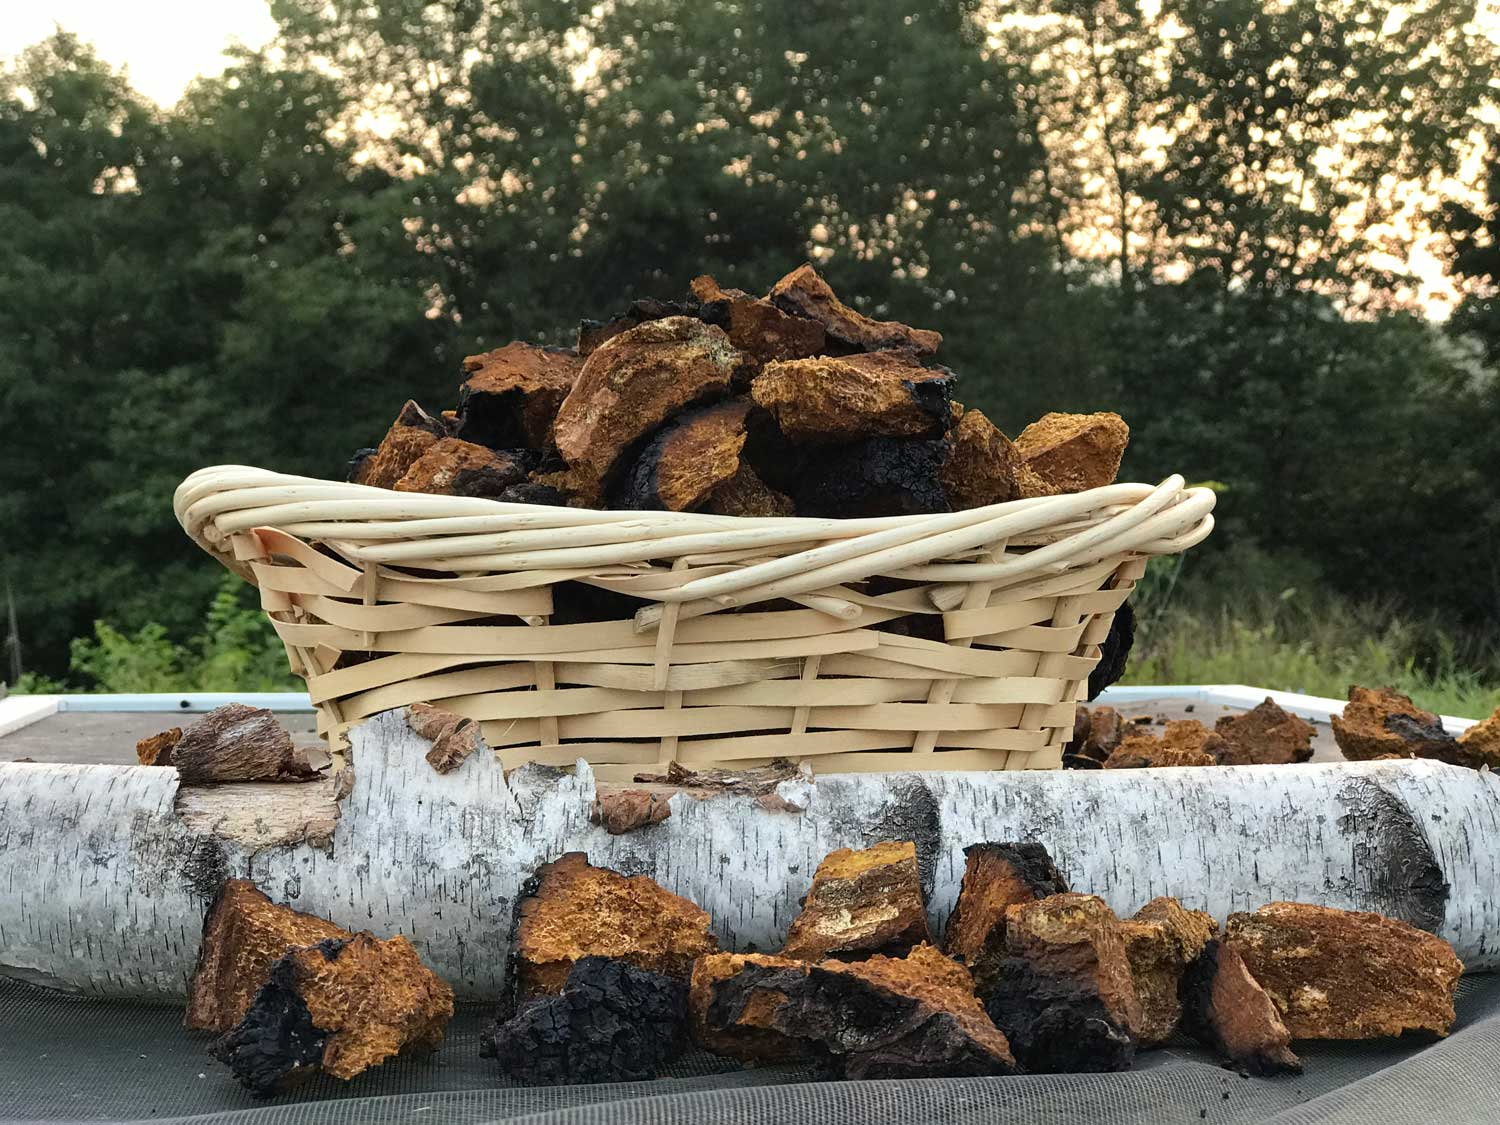 ADK Chaga from the Adirondack Mountains